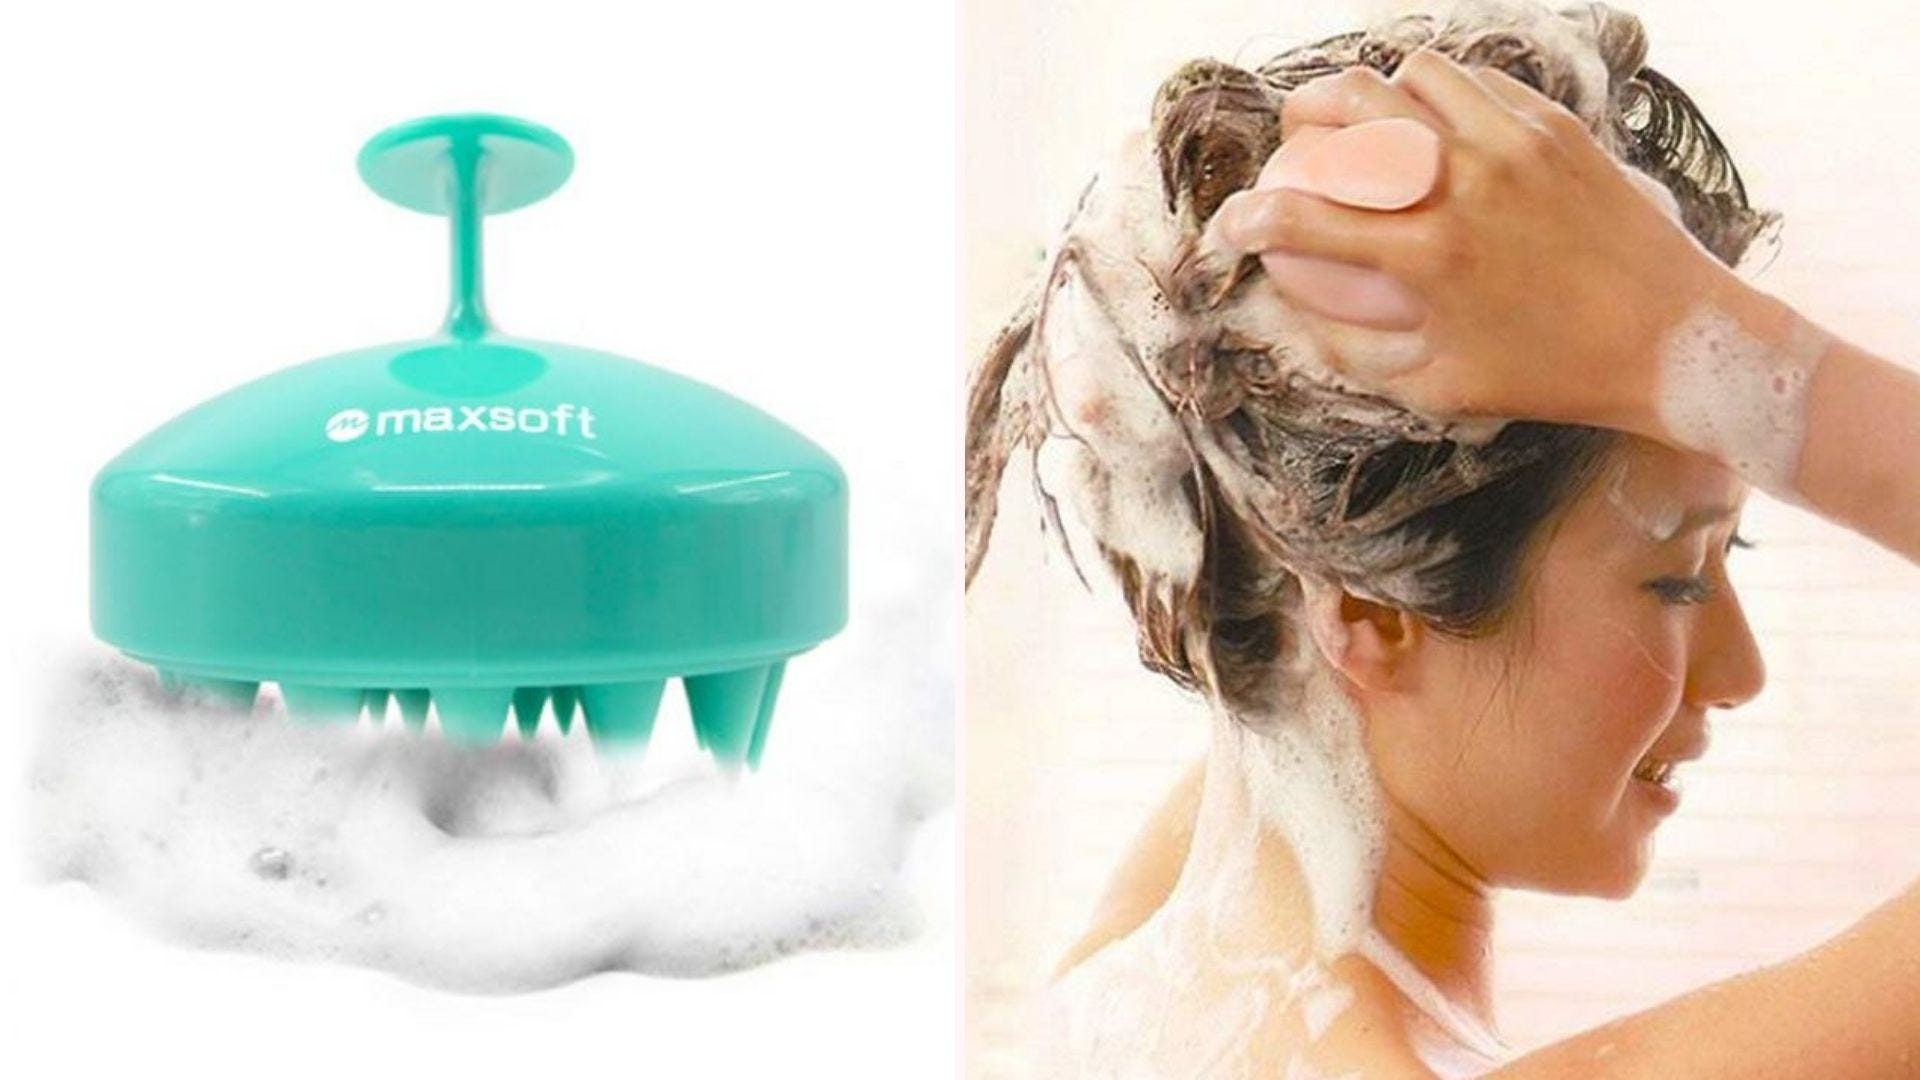 The Maxsoft Hair Scalp Massager Brush in light green and a woman in the shower lathering her hair with the pink massager.